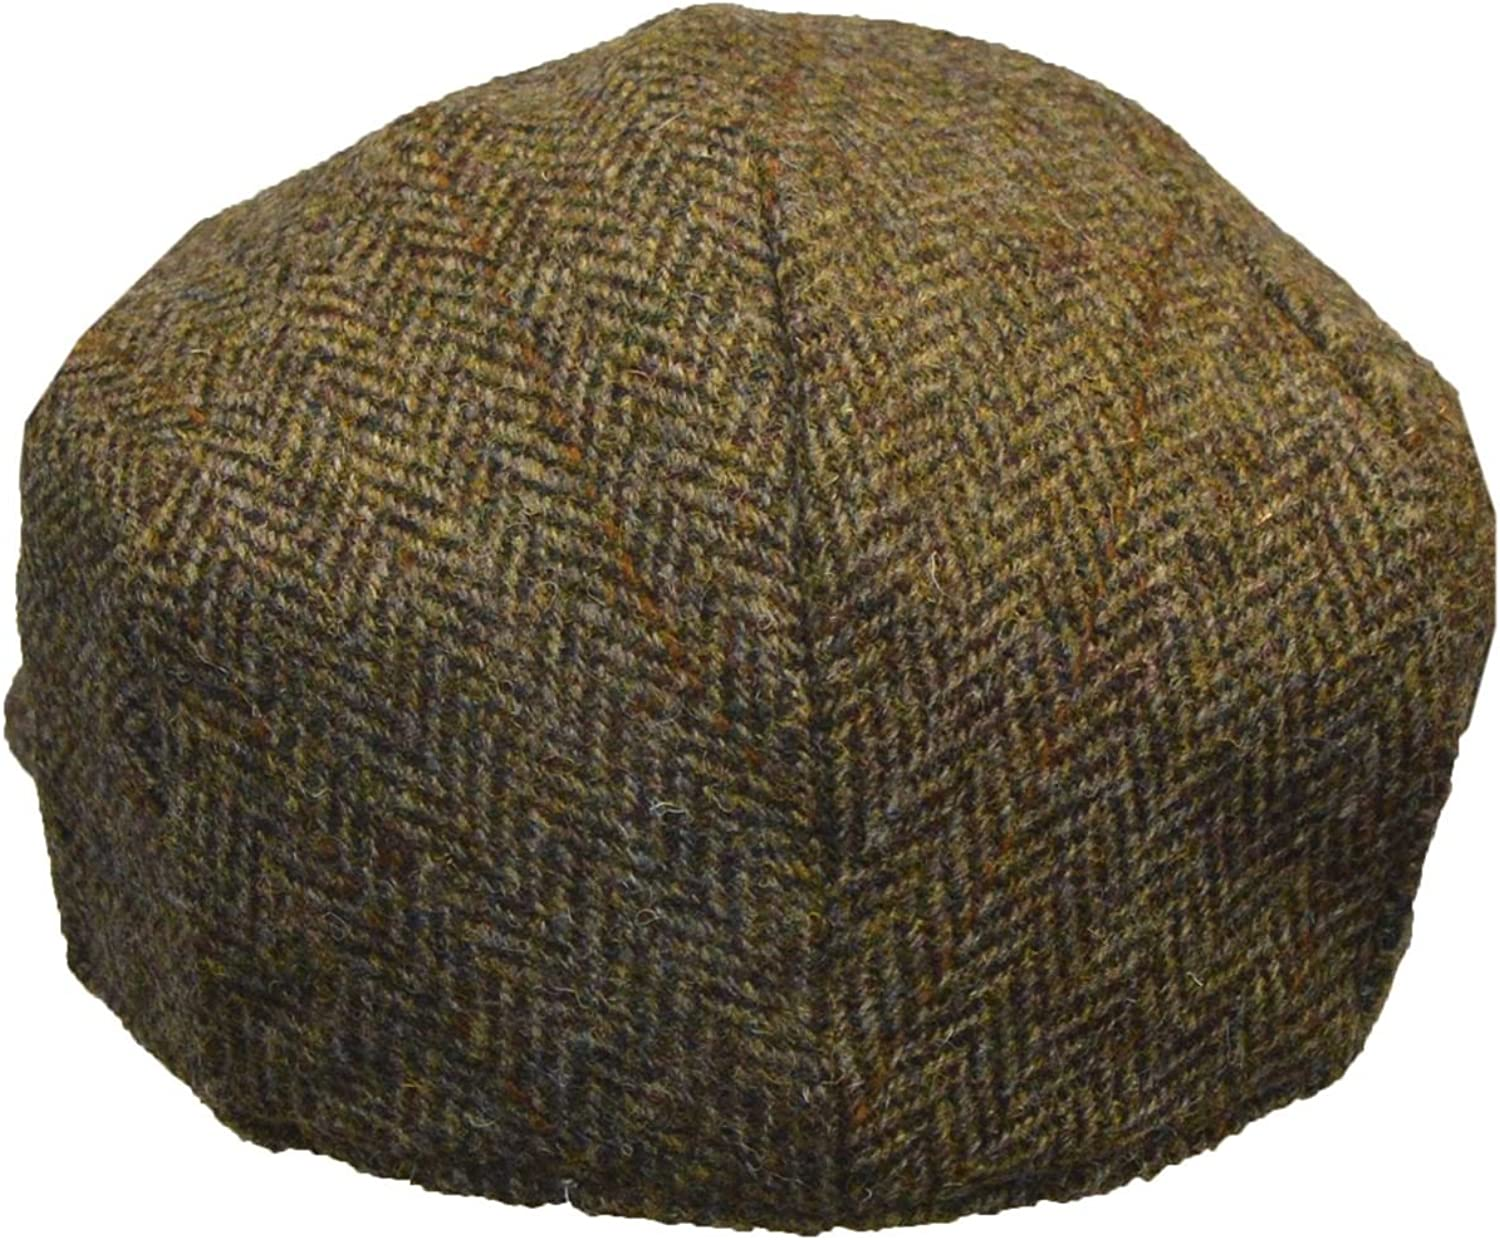 NEW LAWRENCE /& FOSTER TWEED FLAT CAP SIZE 6 7//8 56 hat shooting fishing racing